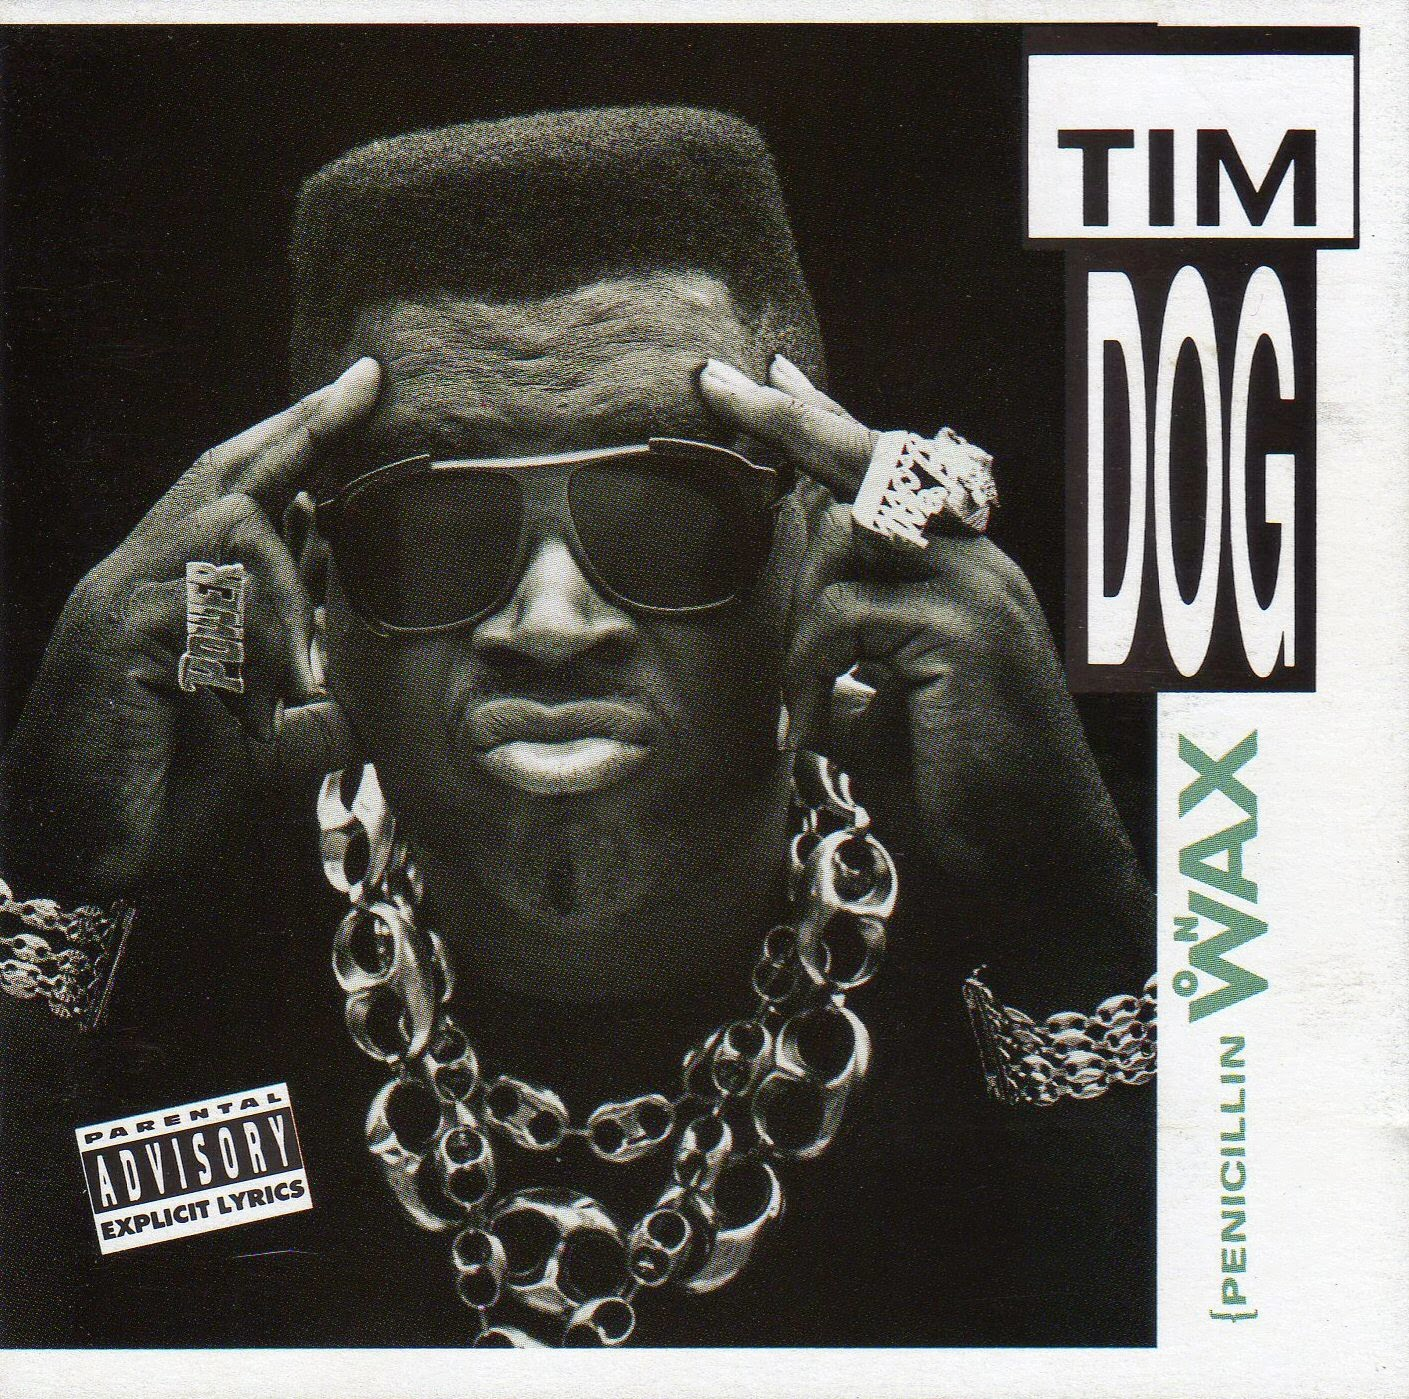 Tim Dog - Penicillin On Wax (1991)